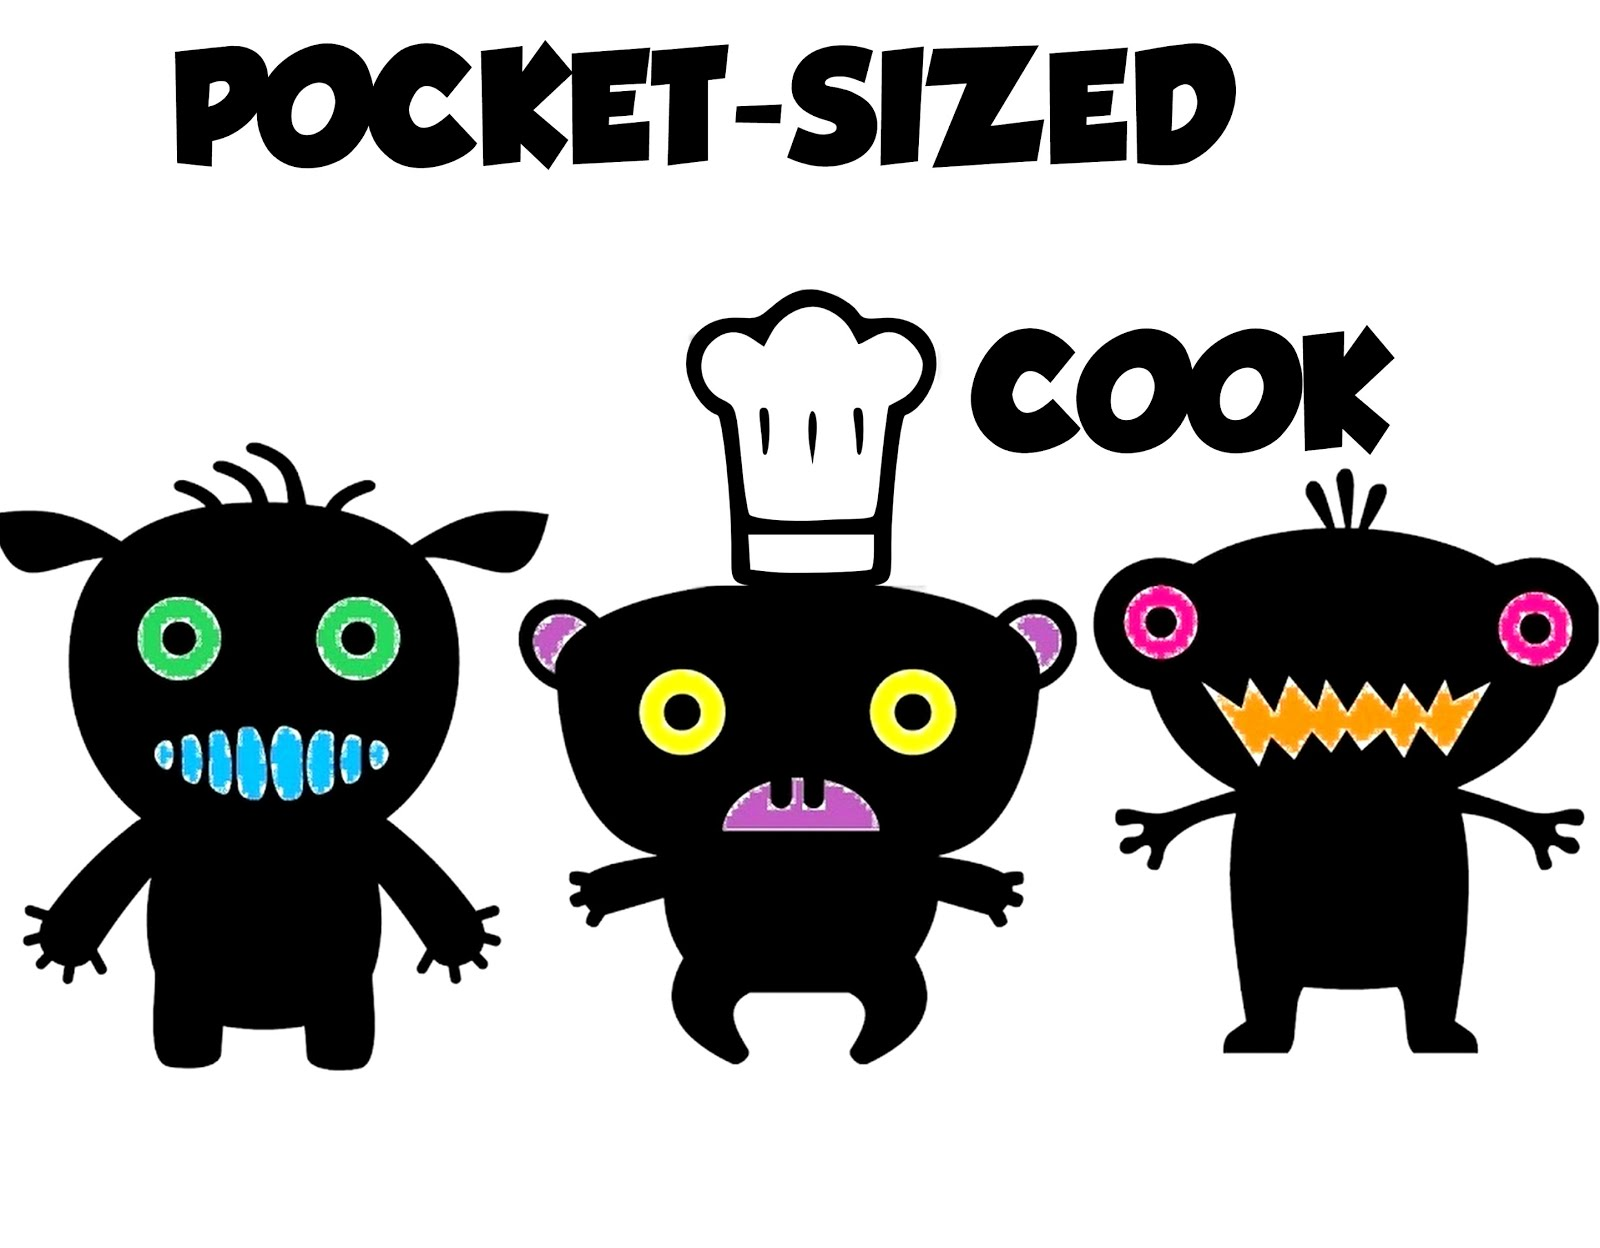 Pocket-sized Cook